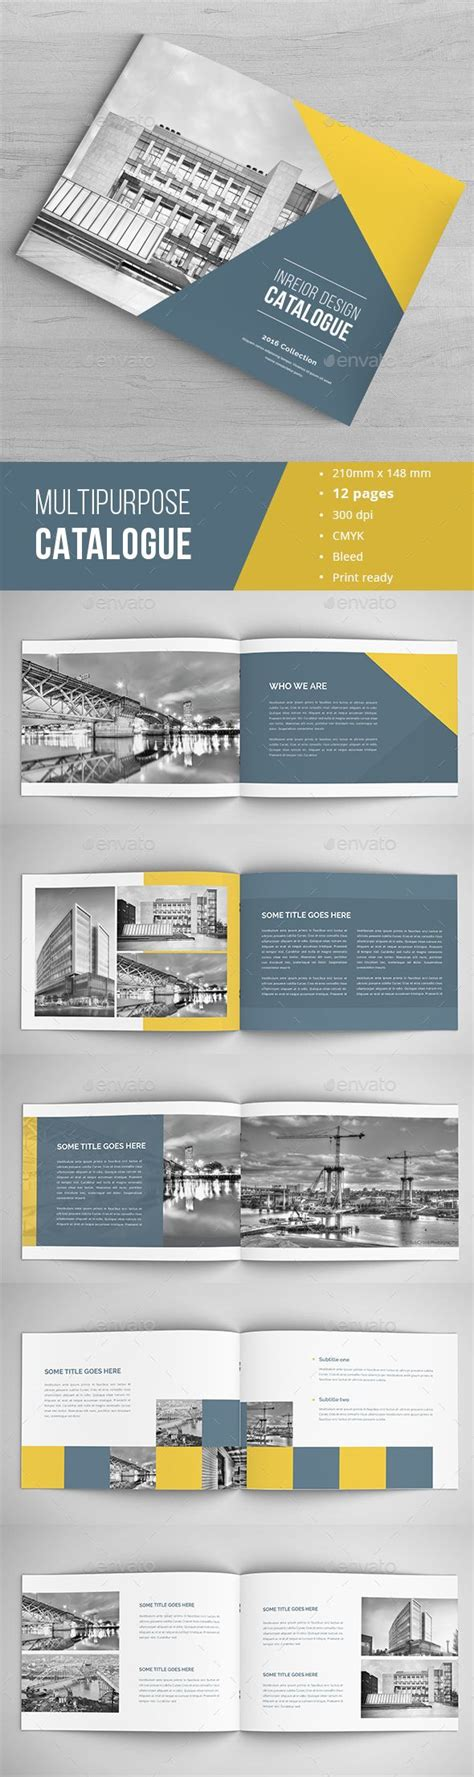 download layout indesign modern architecture brochure template indesign indd